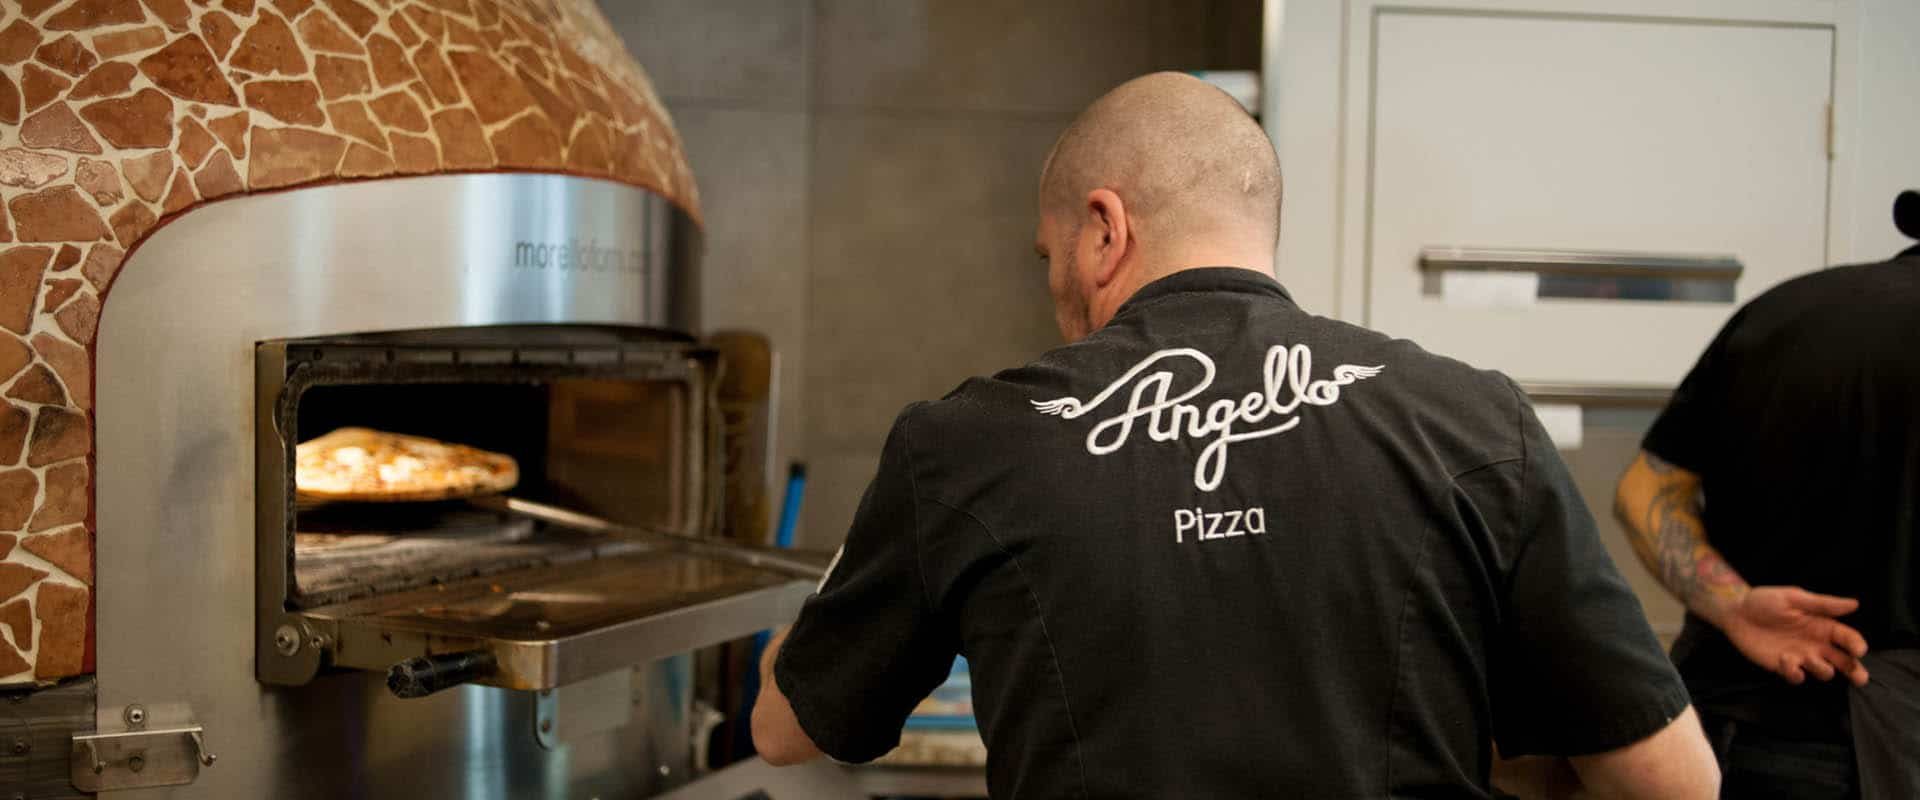 restaurant-_0005_angello-pizza-rennes